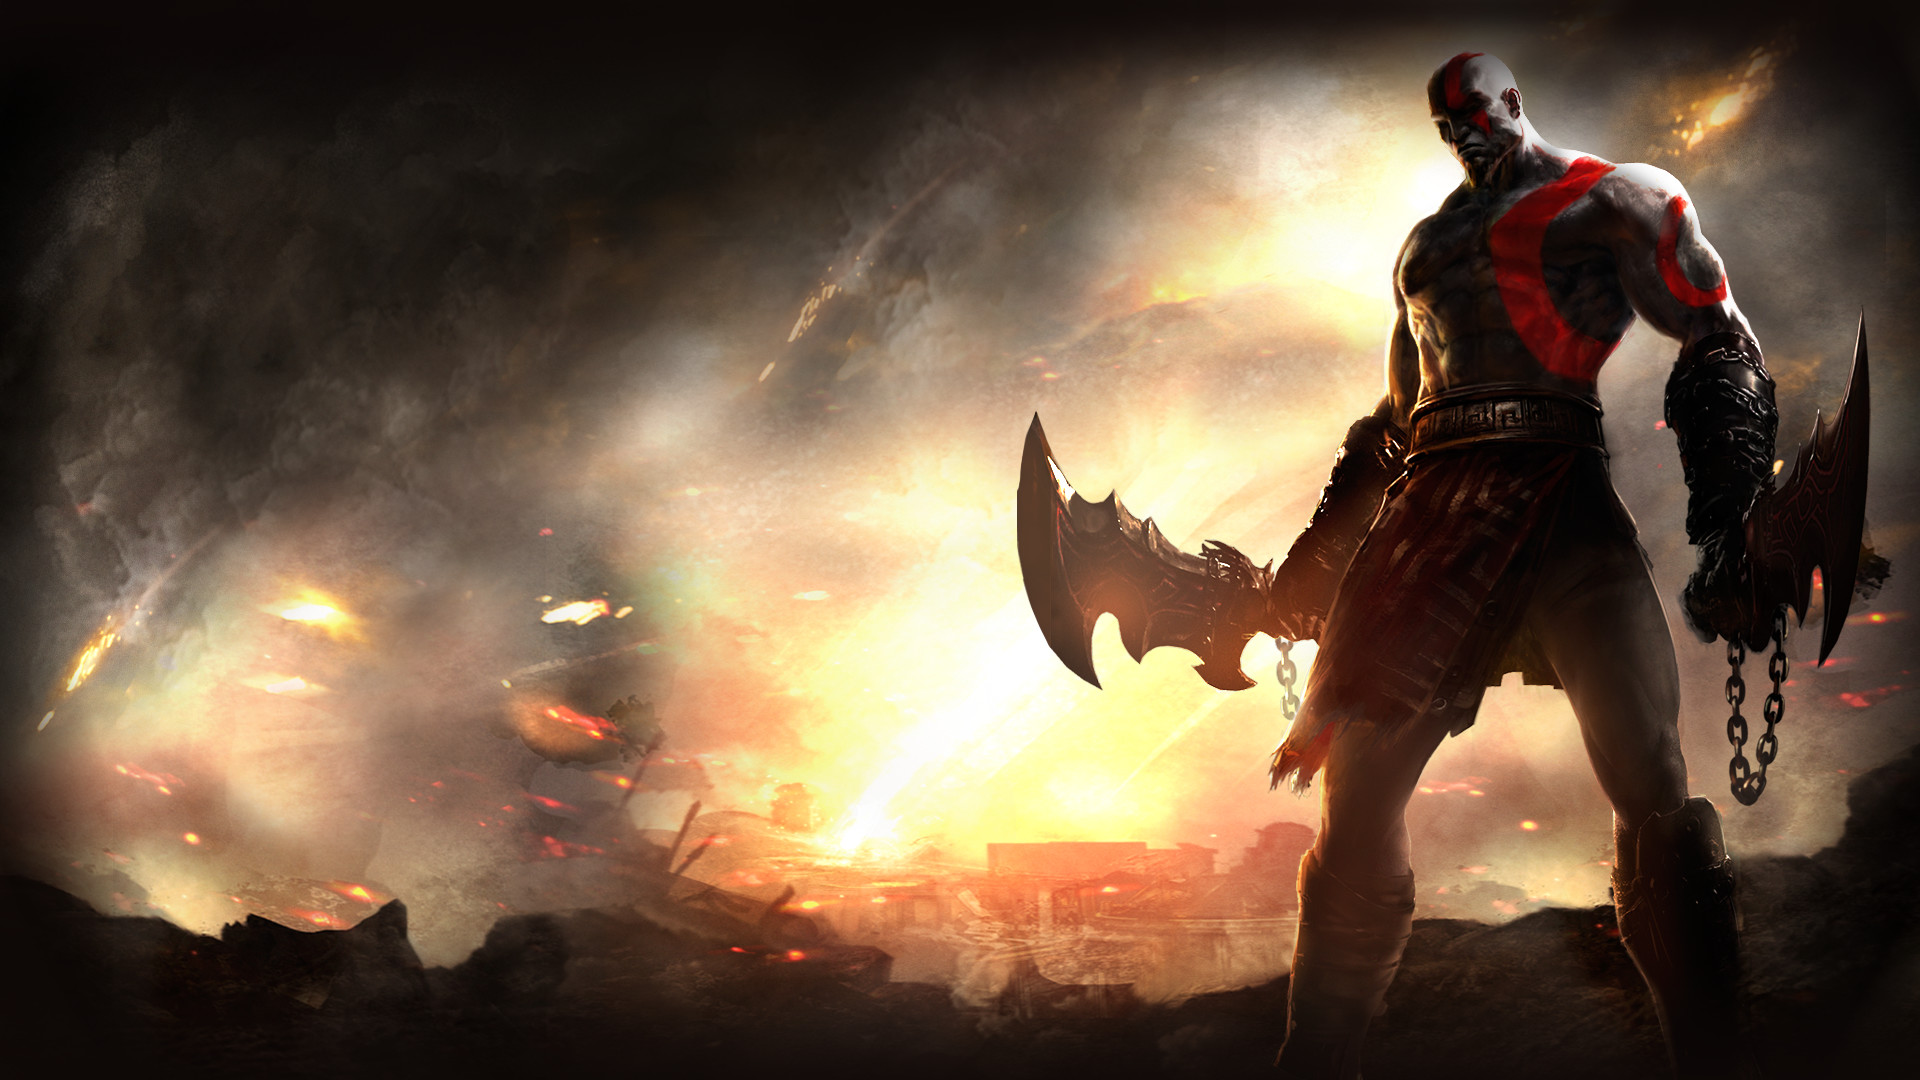 1920x1080 54 God Of War HD Wallpapers | Backgrounds - Wallpaper Abyss